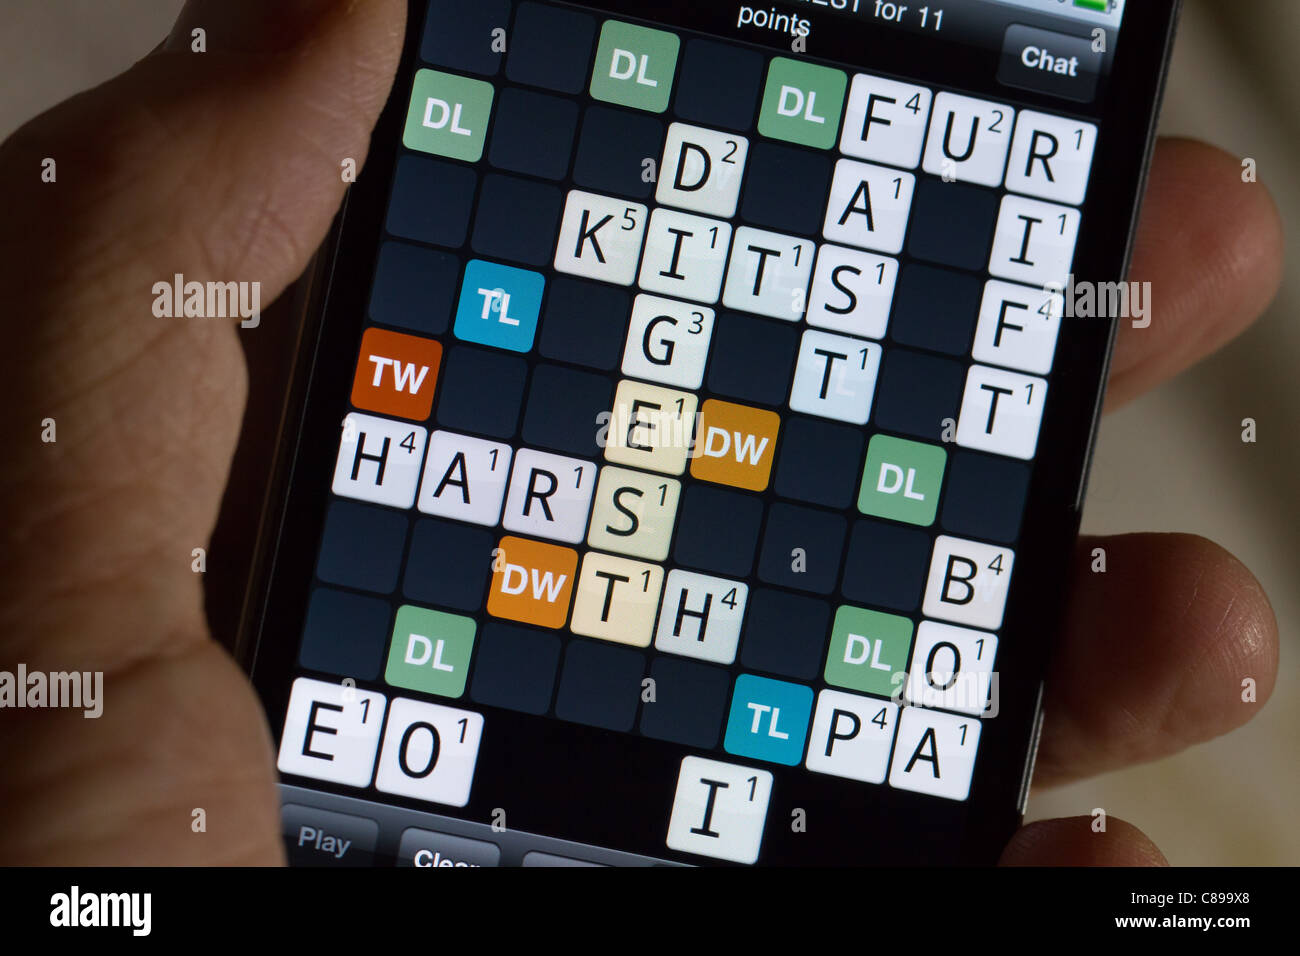 Letters Wordfeud Hand Scrabble Game Stock Photos And Hand Scrabble Game Stock